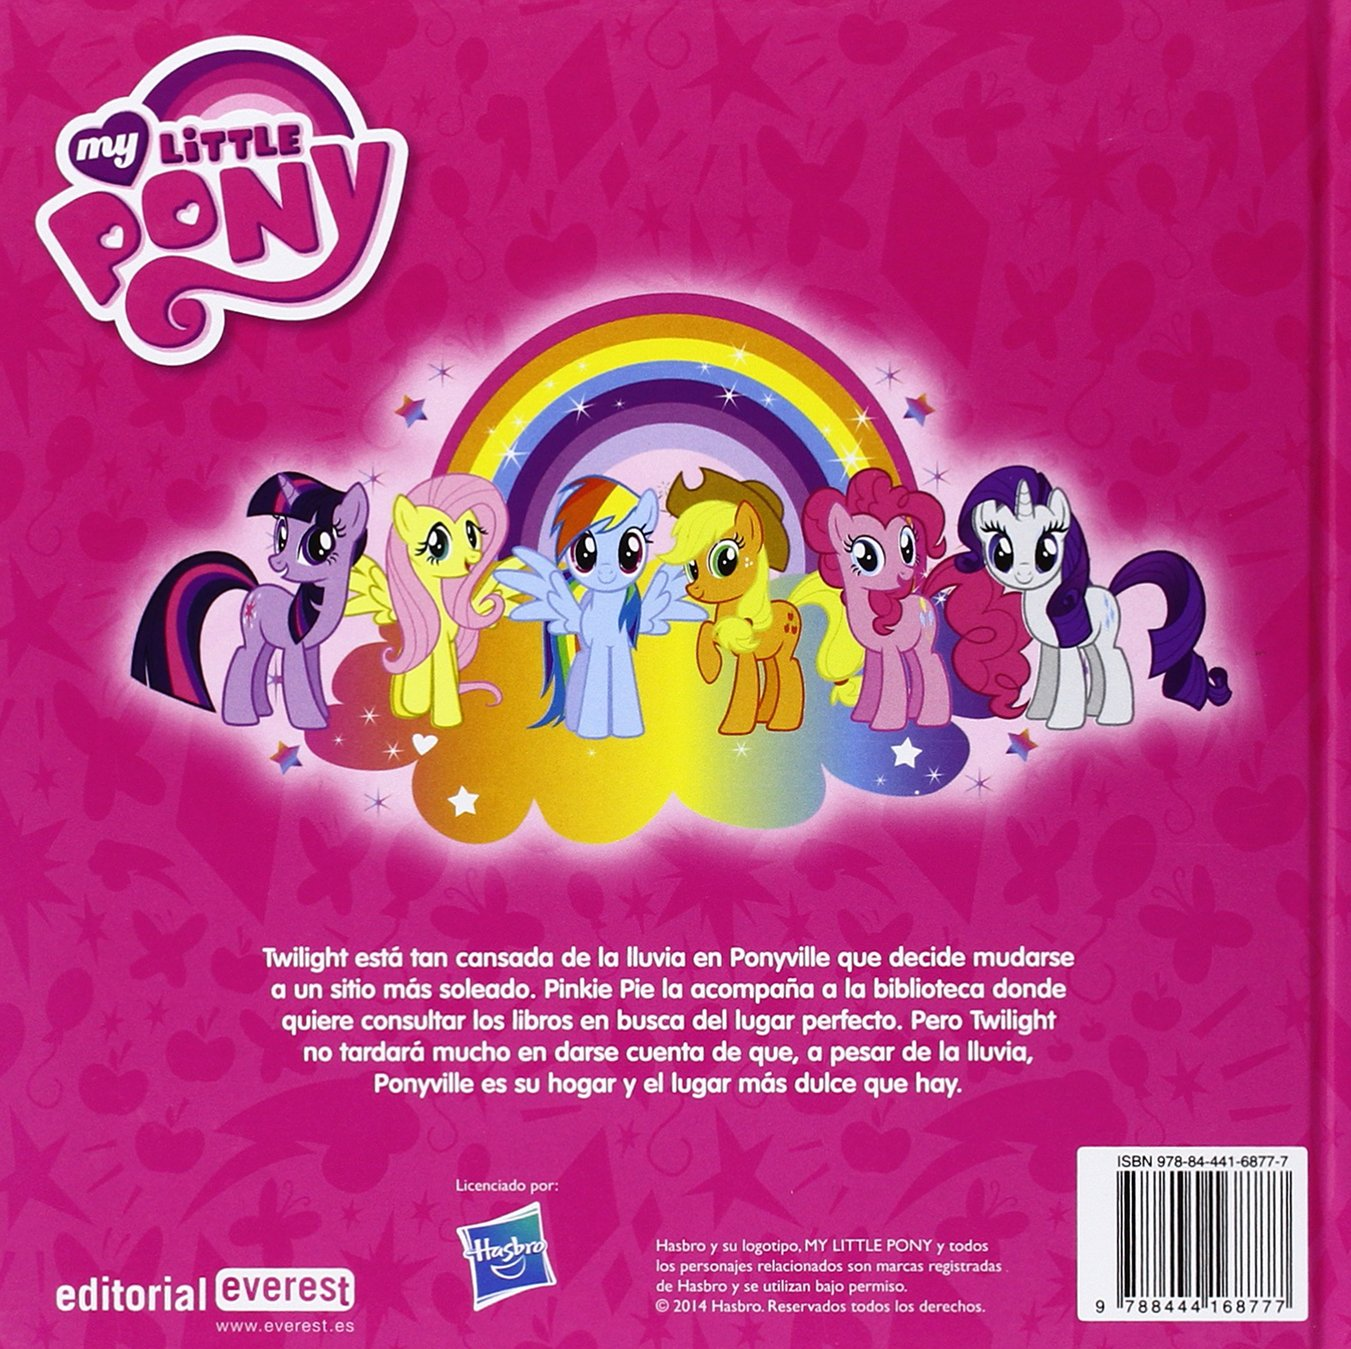 My Little Pony: Ponyville, dulce Ponyville: Barbara Galinska: 9788444168777: Amazon.com: Books